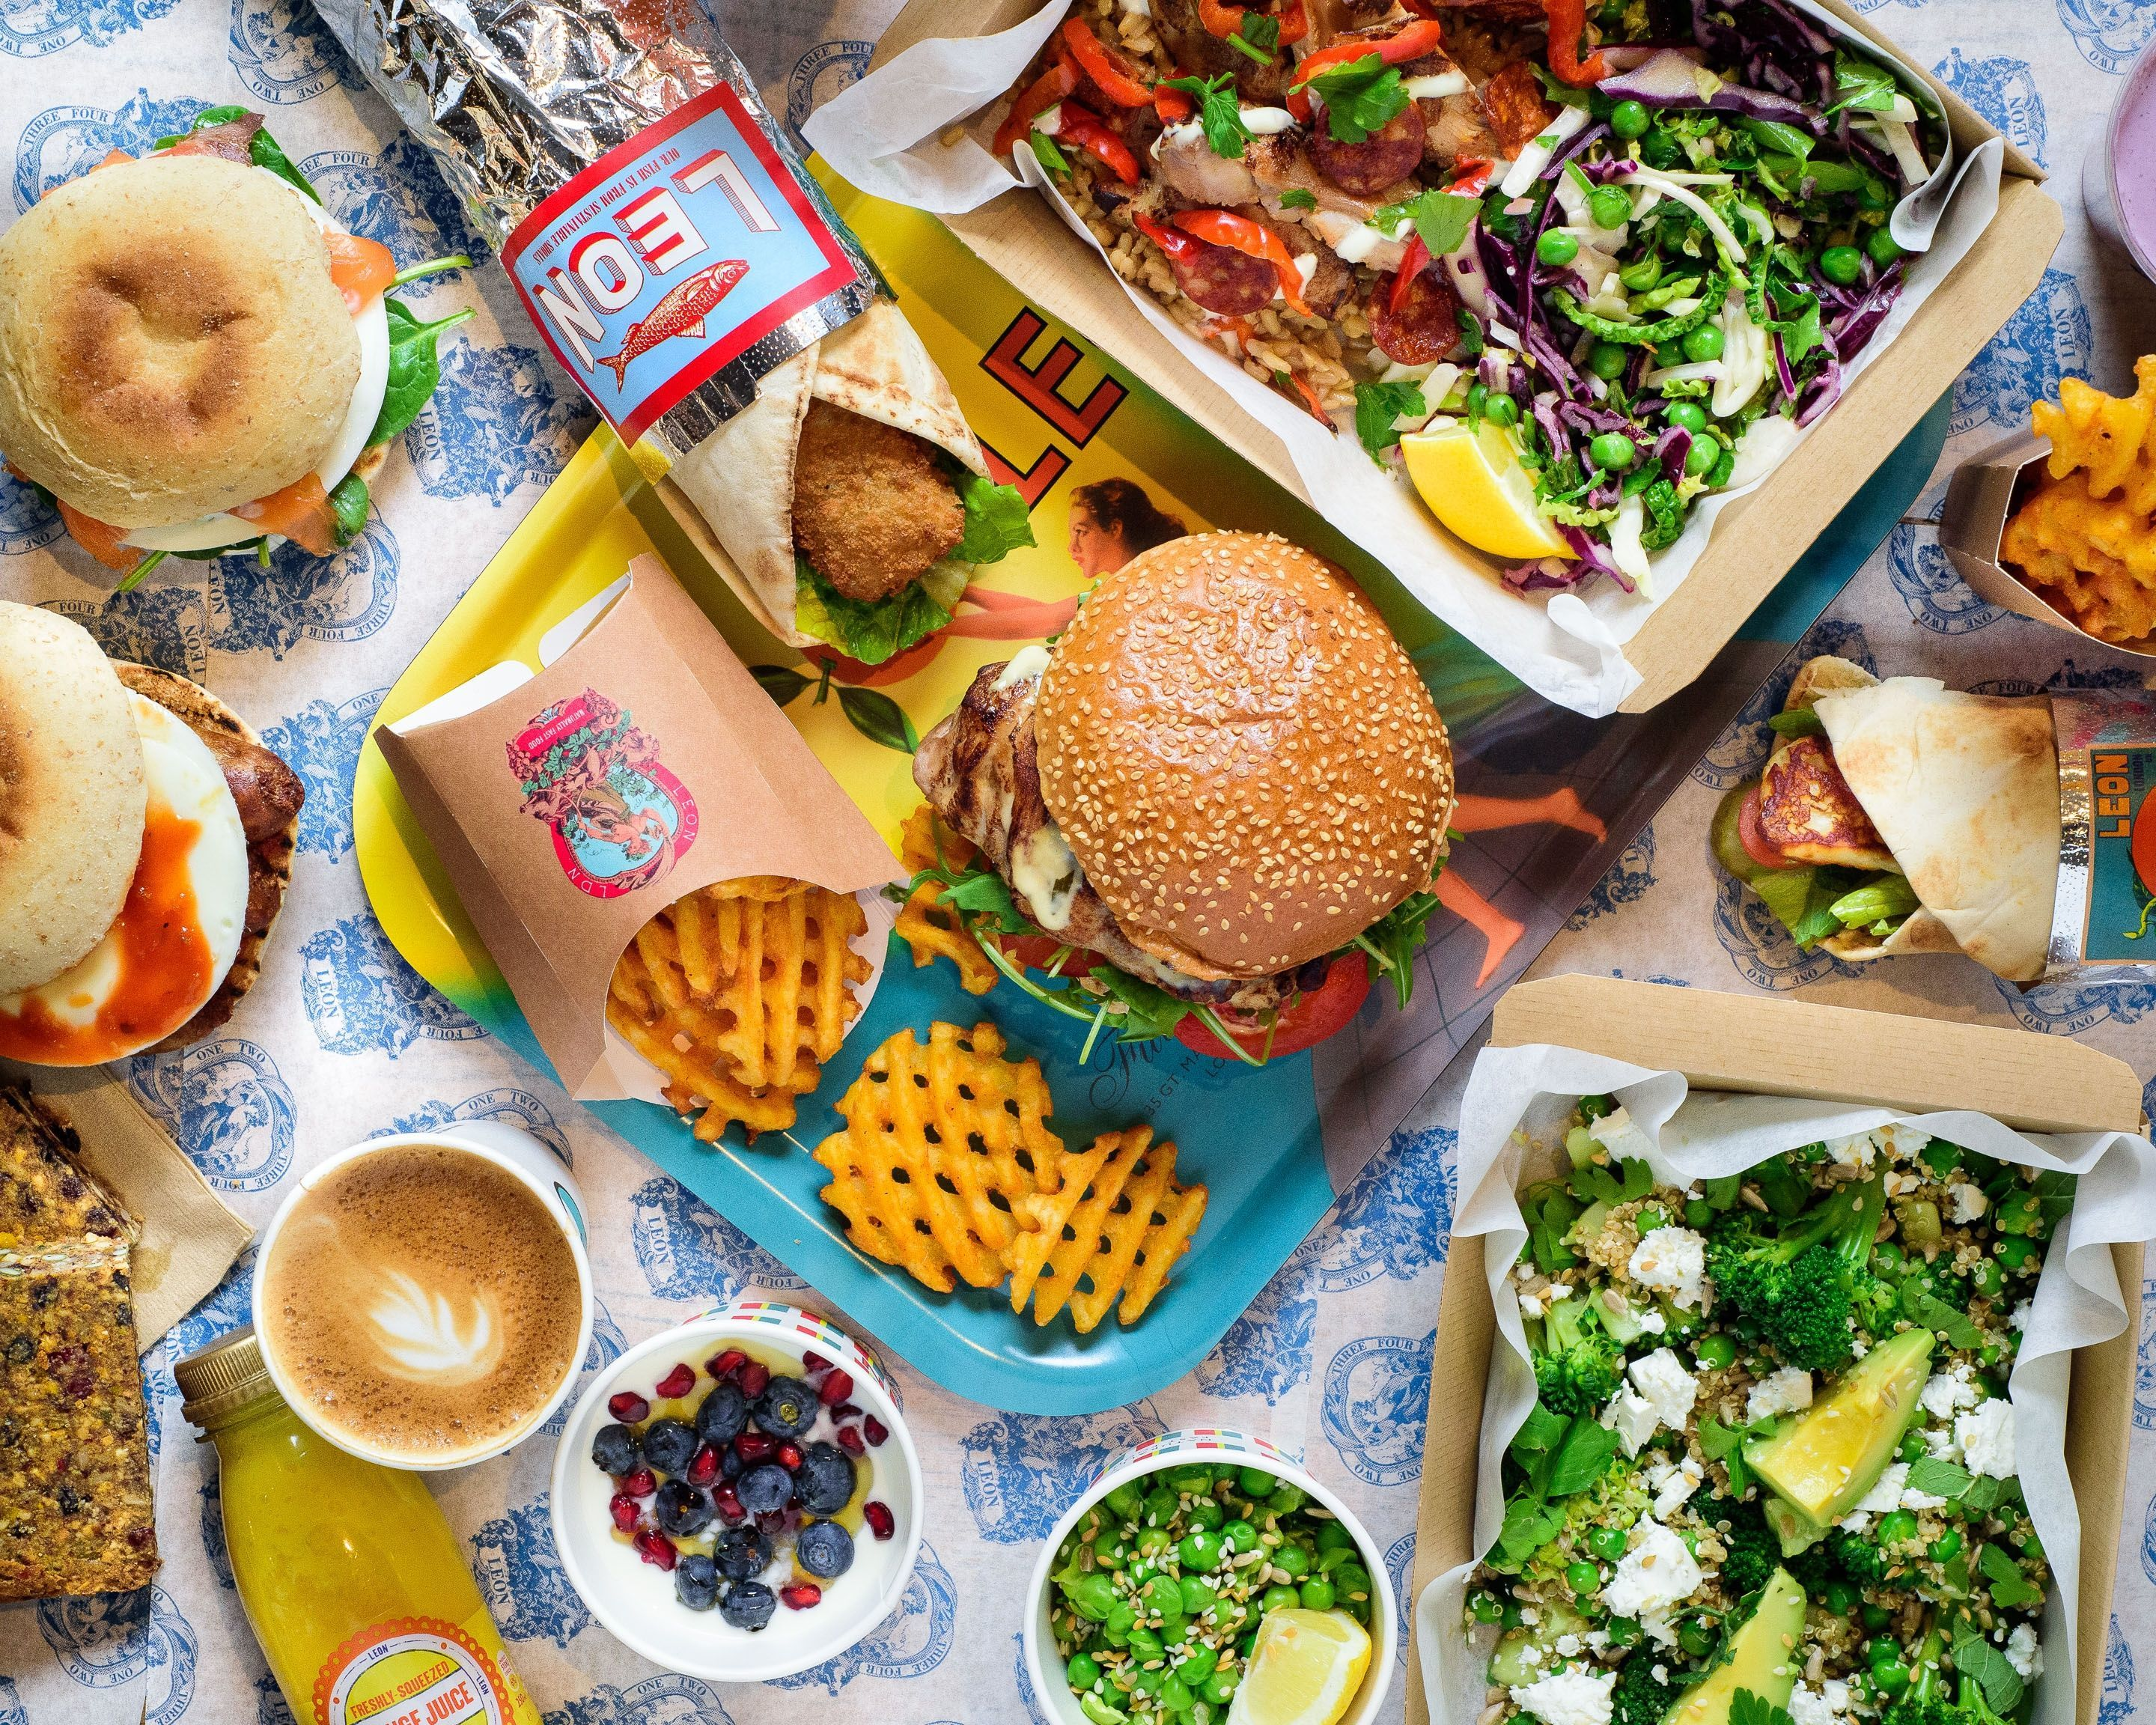 City Pantry - Lunch in King's Cross - Leon